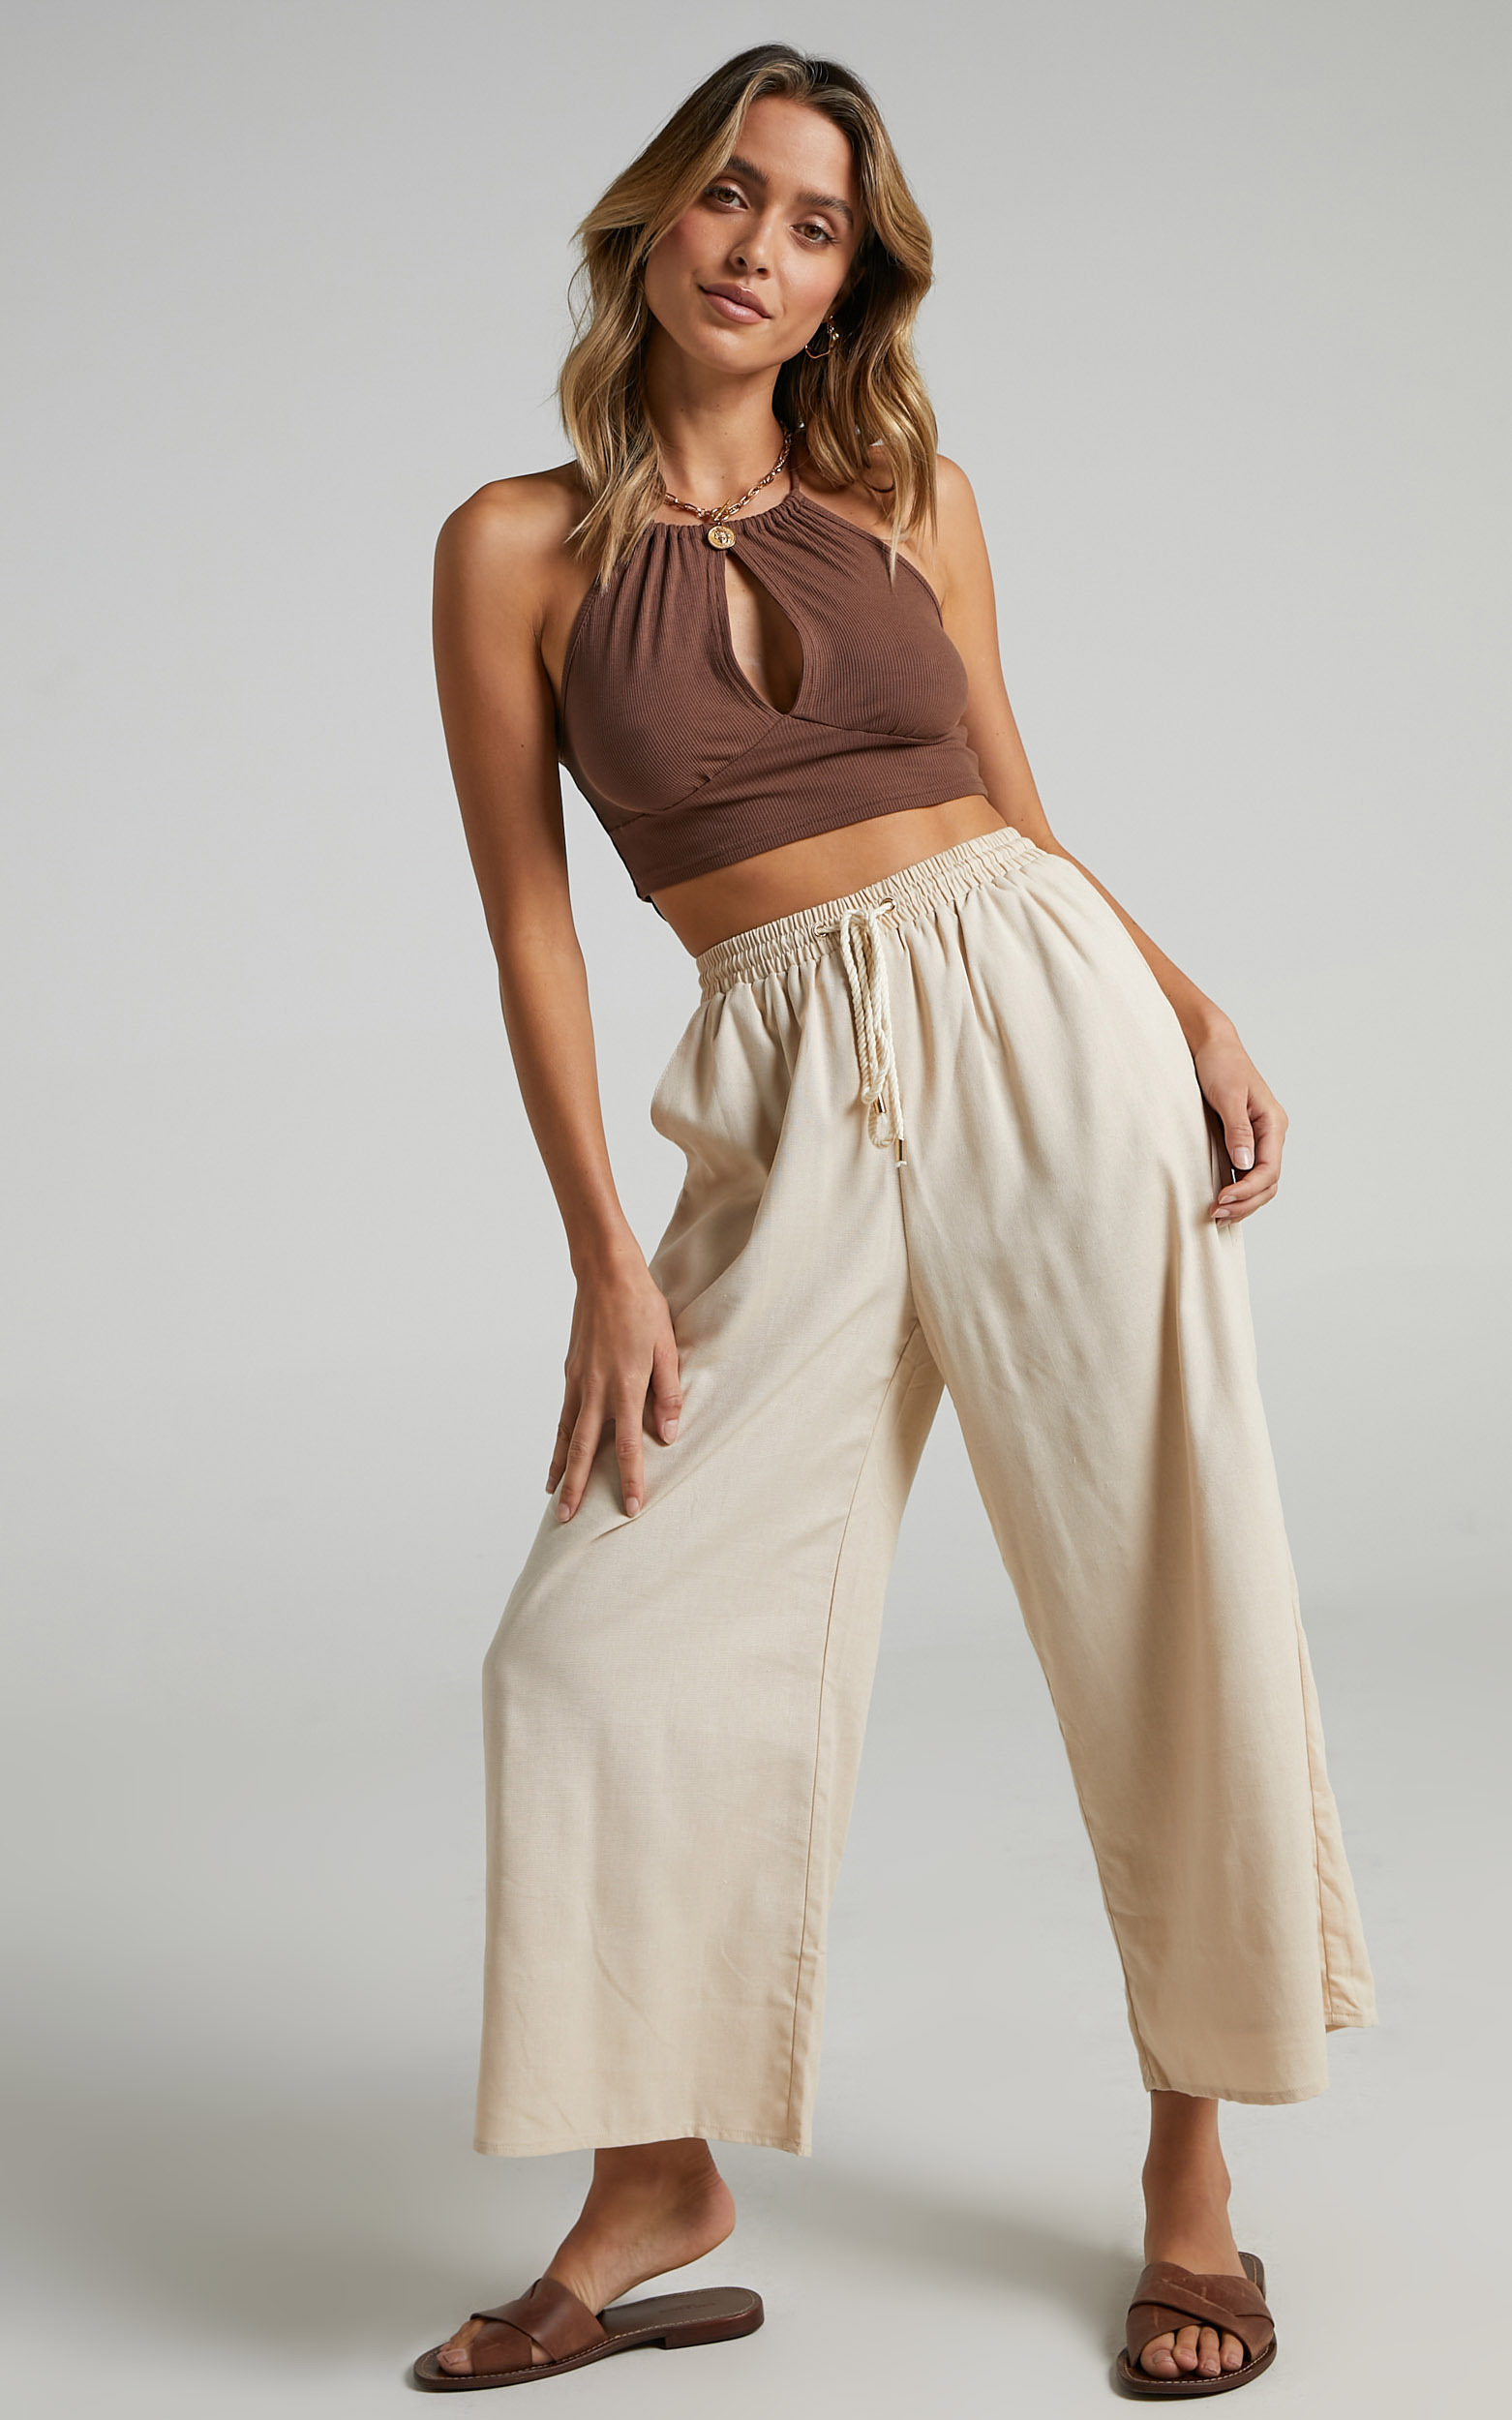 Chenoa Pants in Beige - 14 (XL), Beige, hi-res image number null